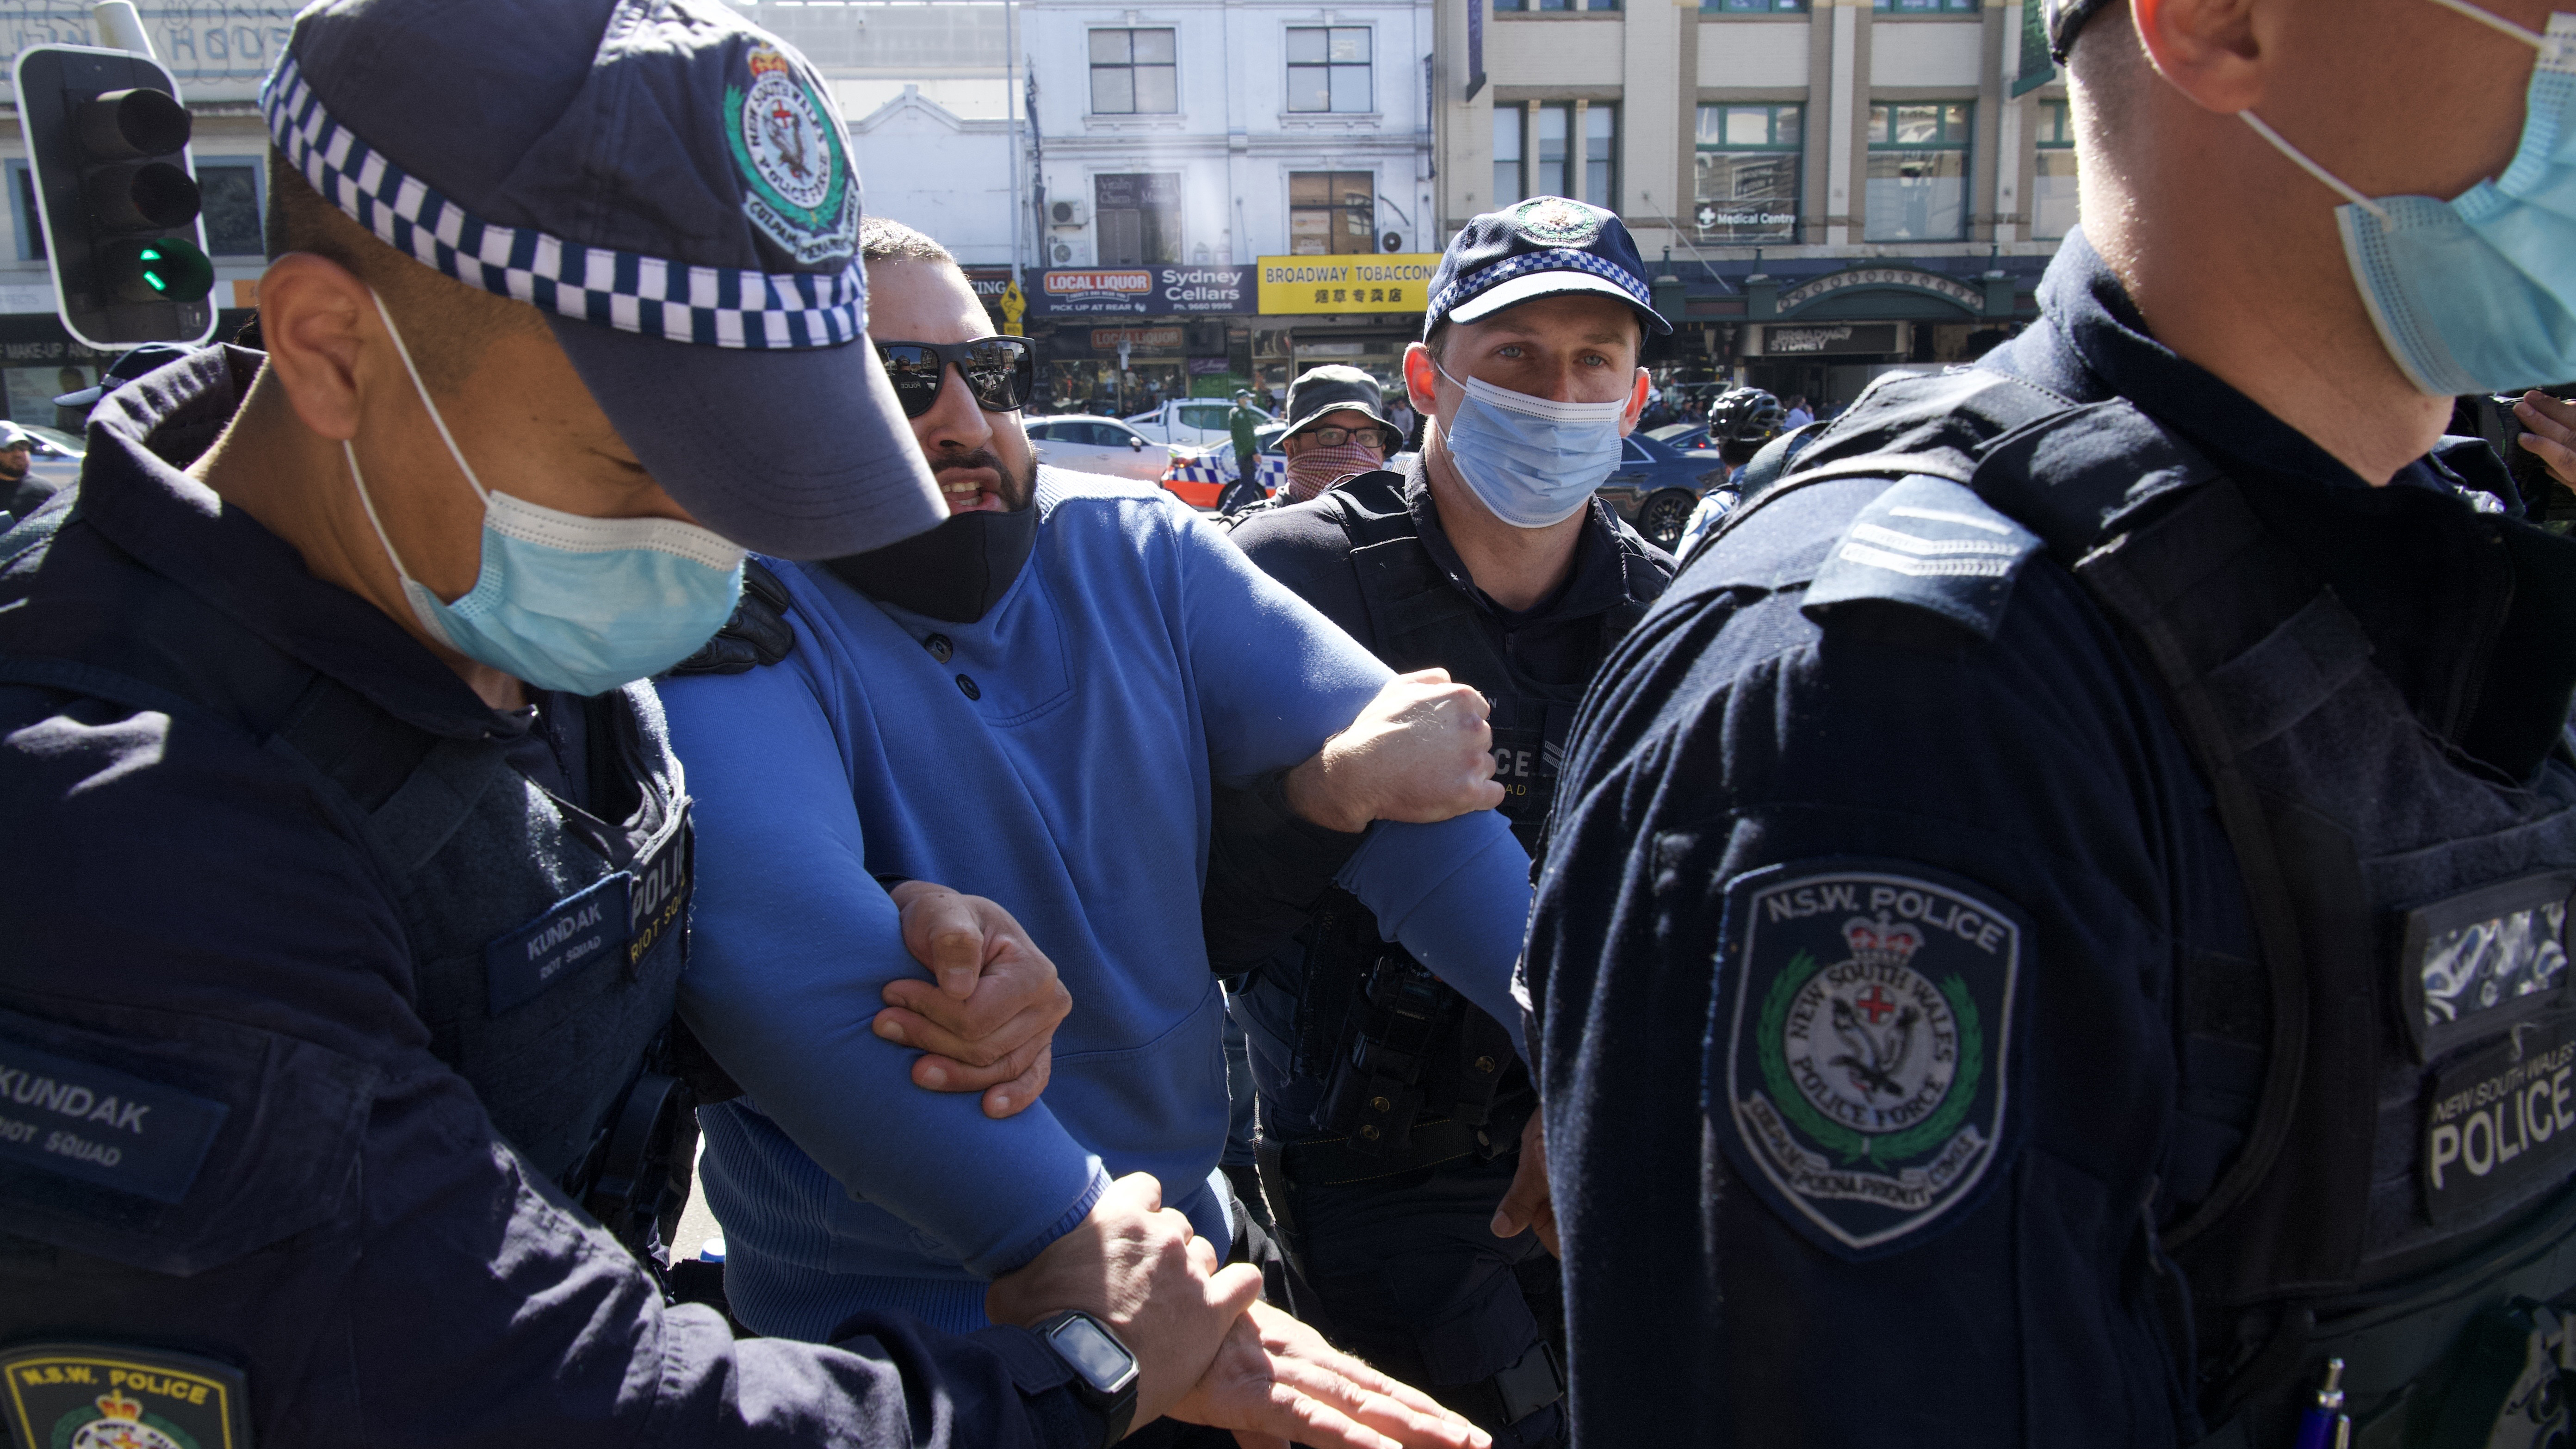 A man is held by police on Broadway, Sydney.